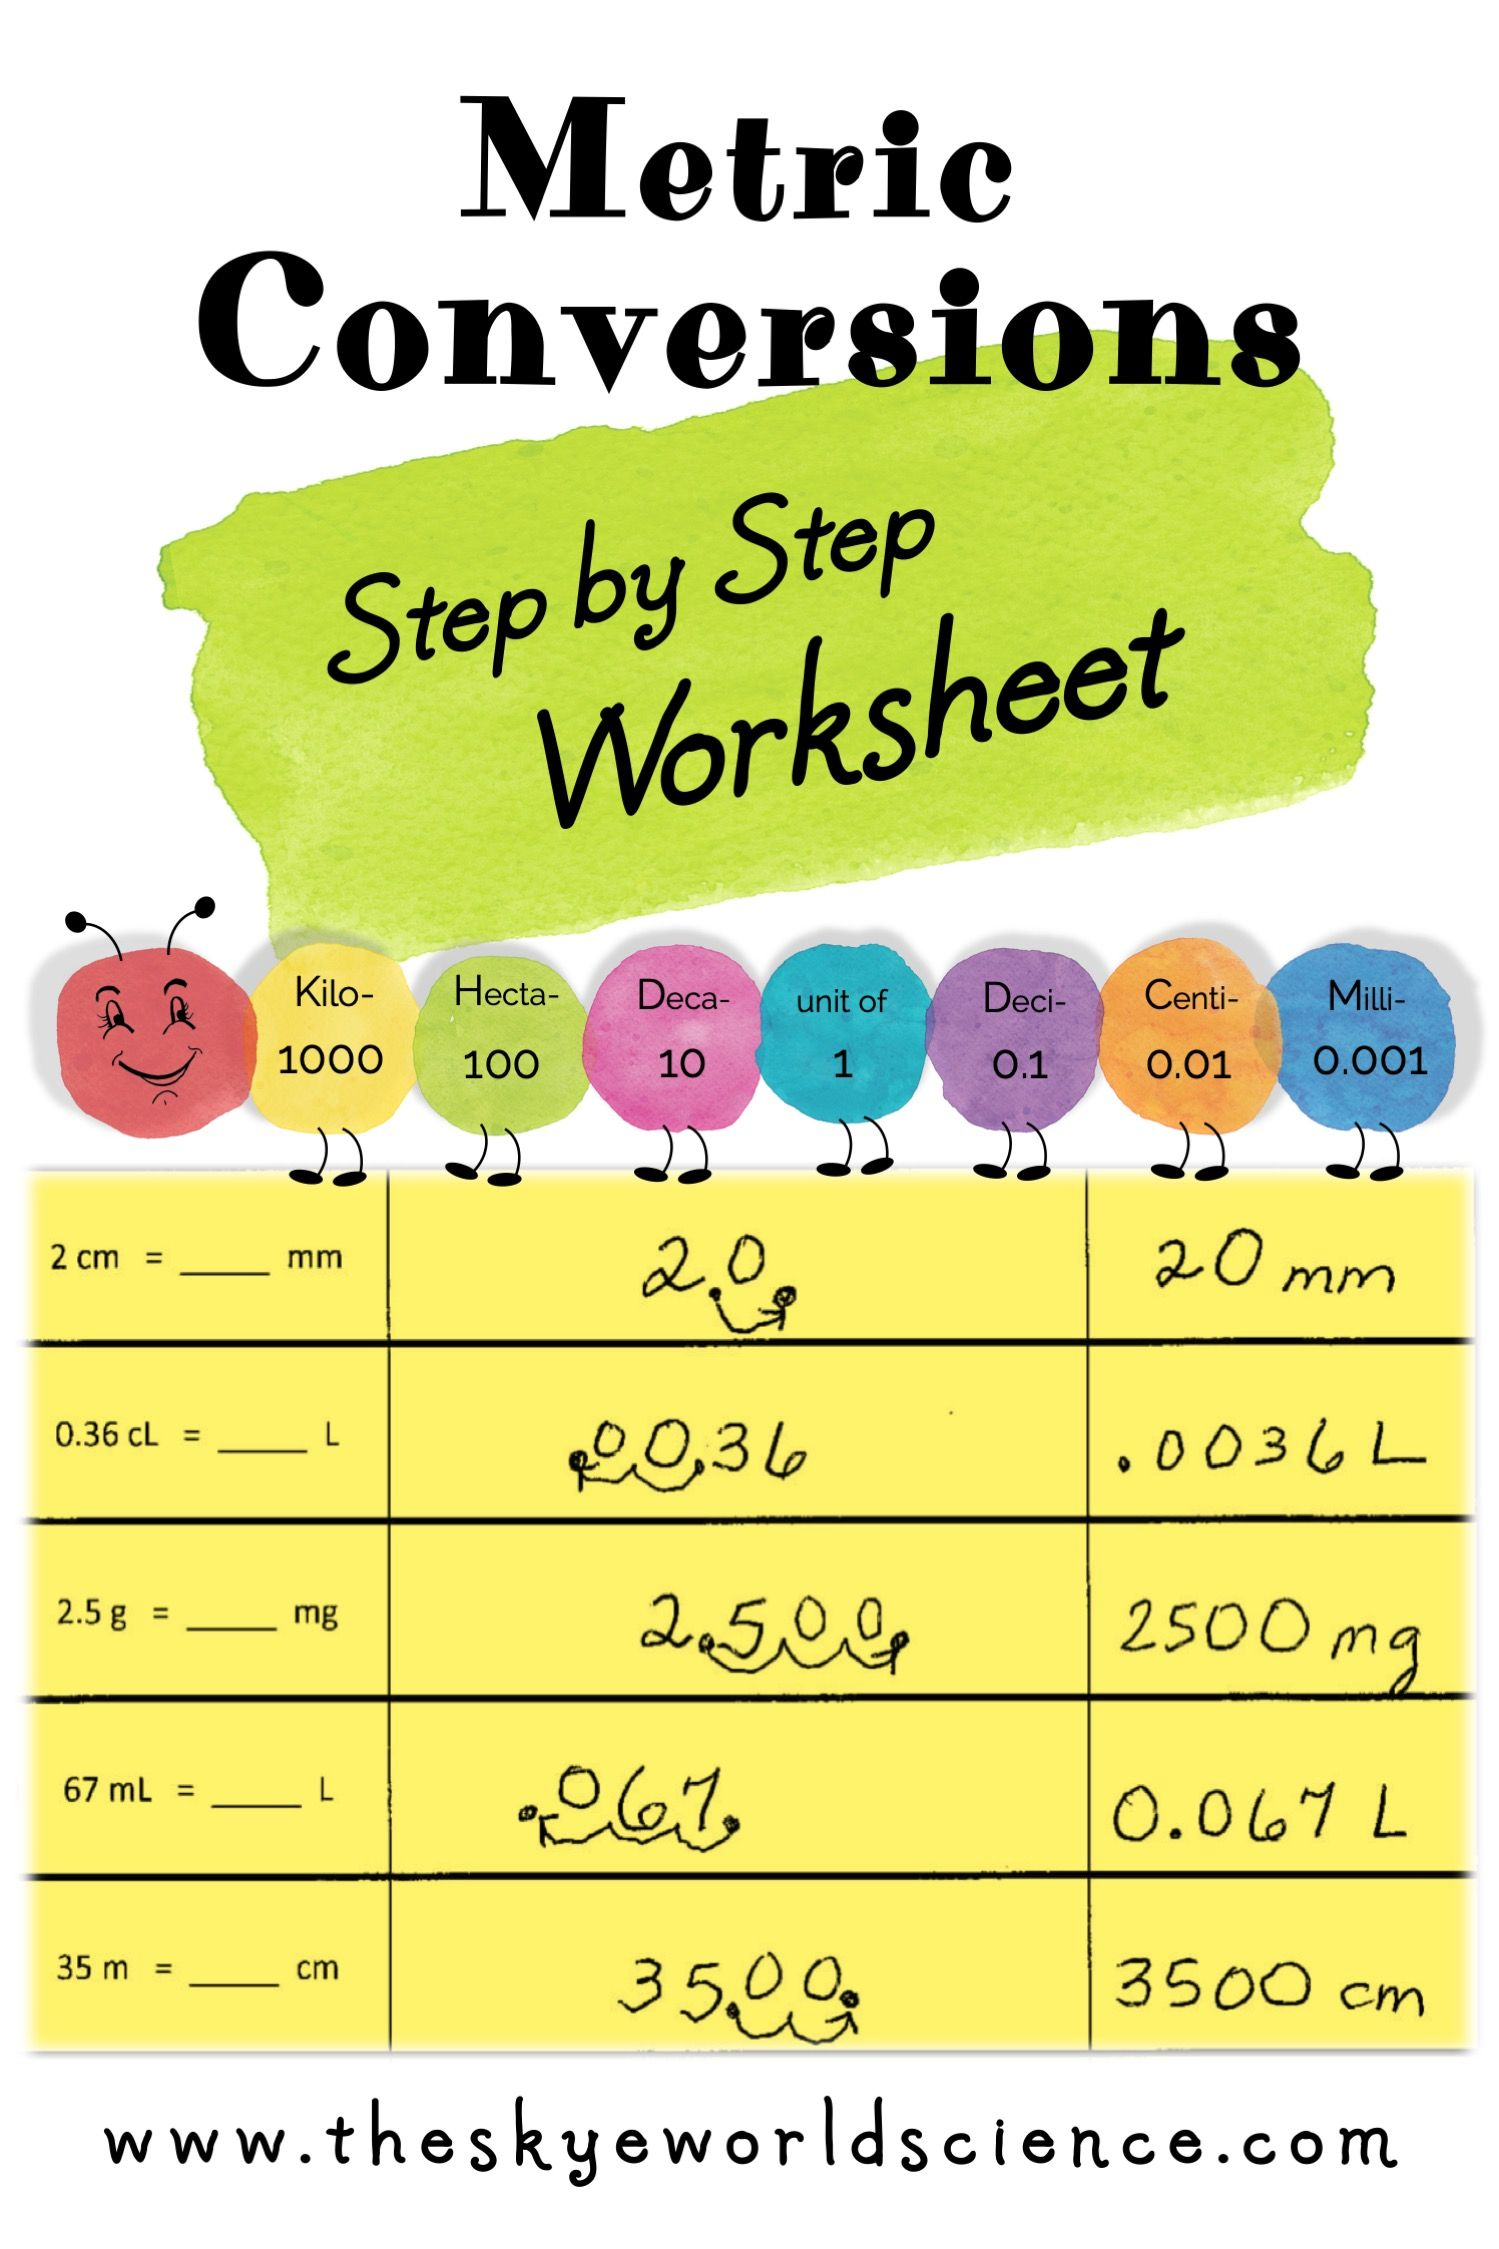 Metric Conversions And Measurements Worksheet In 2020 Free Science Worksheets Basic Math Skills Metric System Conversion